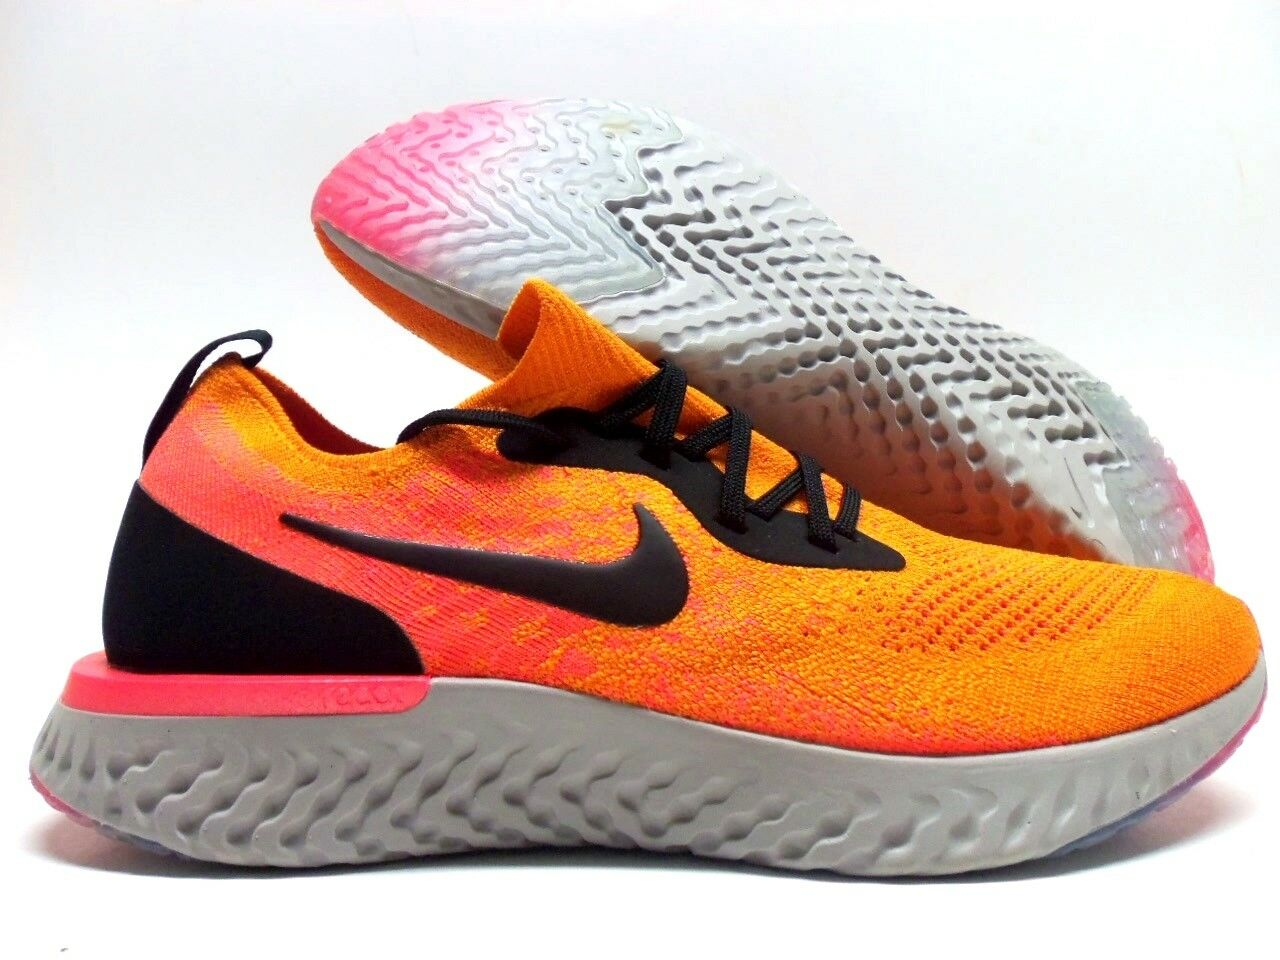 NIKE EPIC REACT FLYKNIT COPPER FLASH BLACK-orange SIZE MEN'S 10 [AQ0067-800]